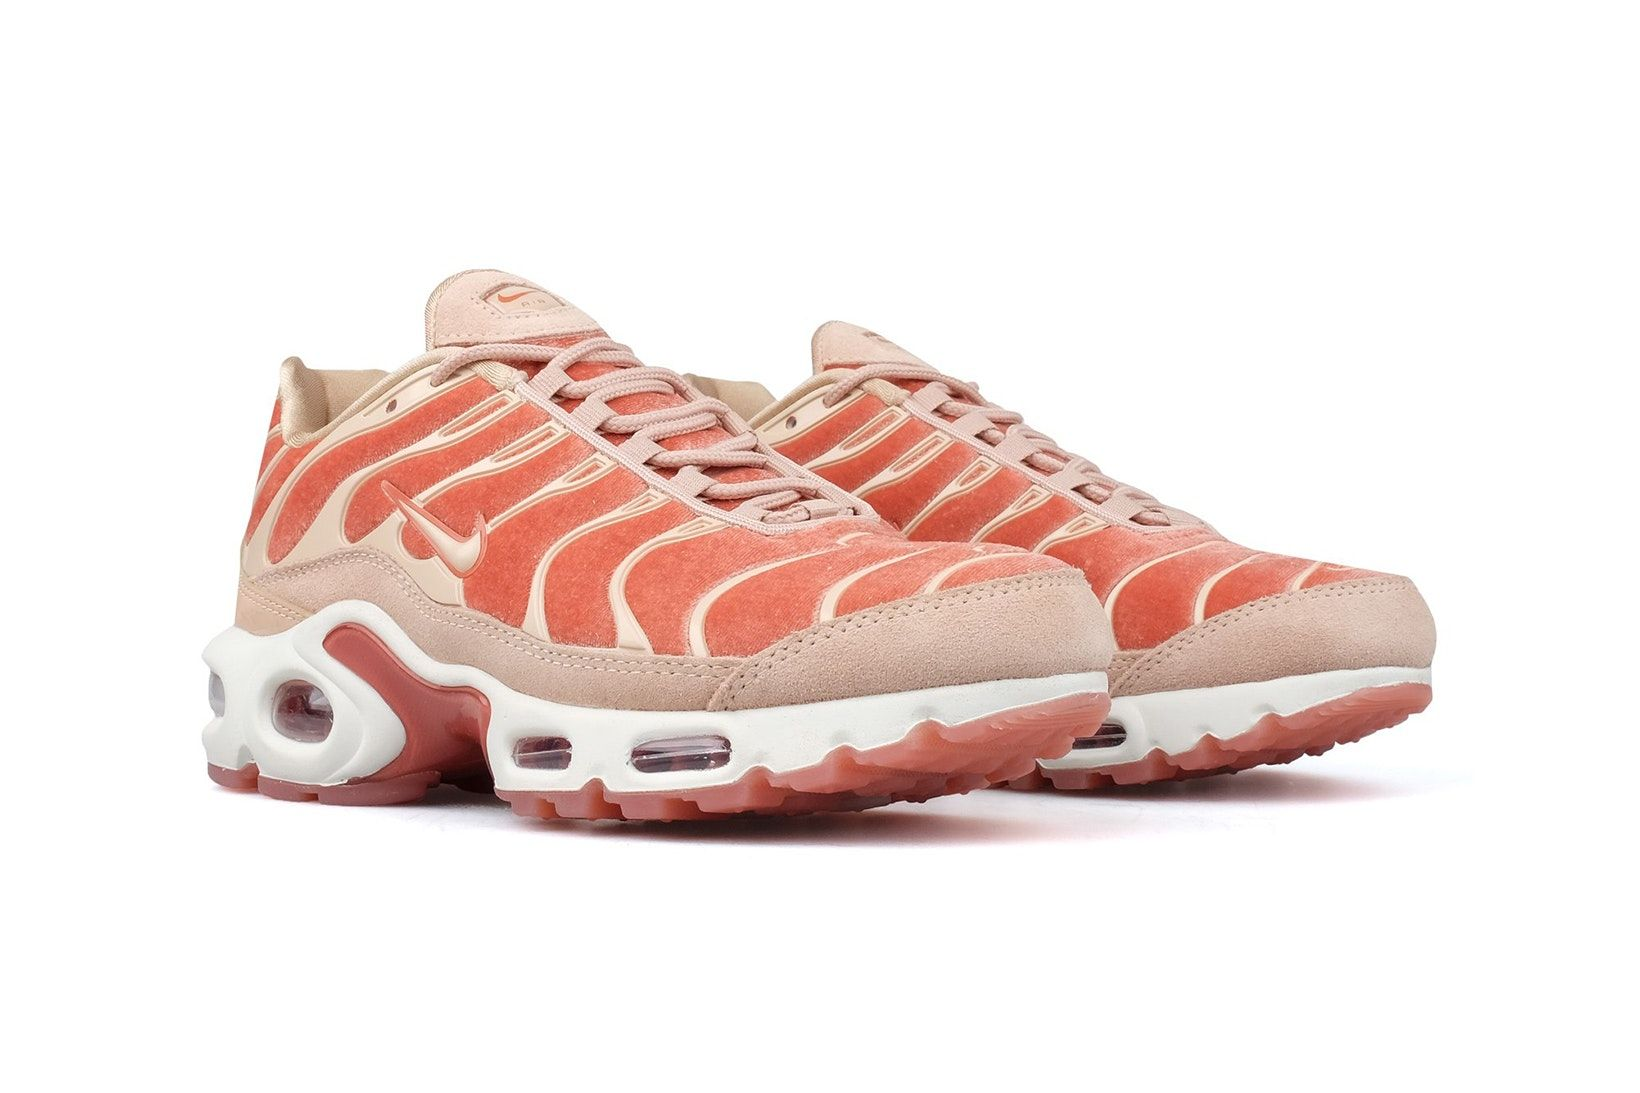 7e2987a507535b Nike Air Max Plus LX Dusty Peach Velvet pastel lux tn tuned retro 90s  womens sneakers where to buy bodega